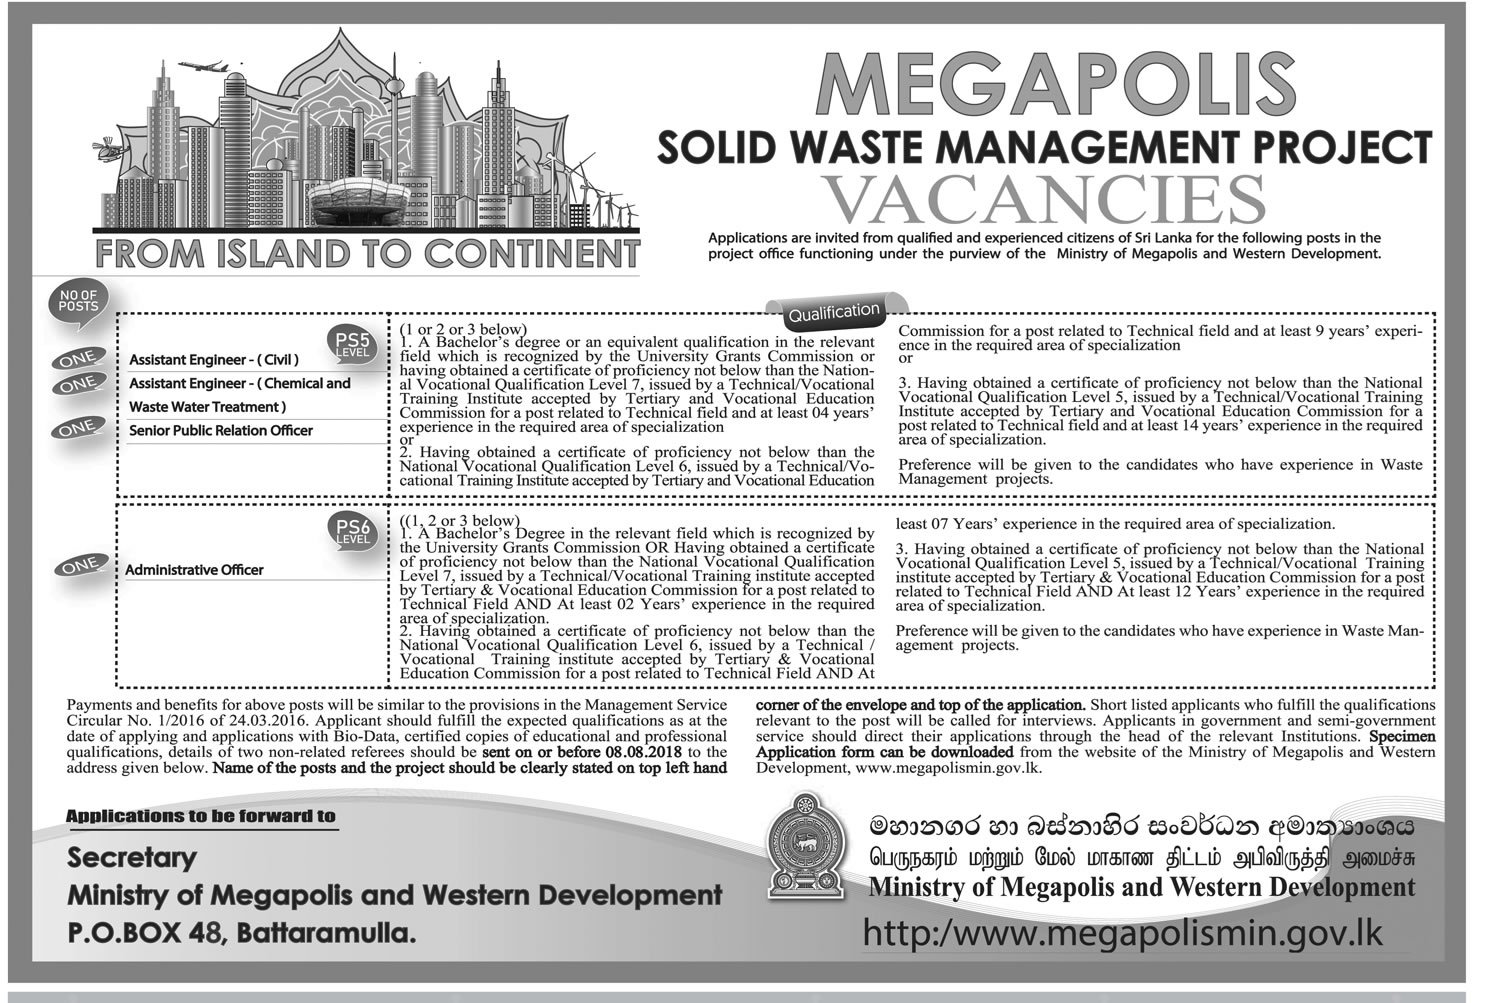 Assistant Engineer (Civil), Assistant Engineer (Chemical Wastewater Treatment), Senior Public Relation Officer, Administrative Officer